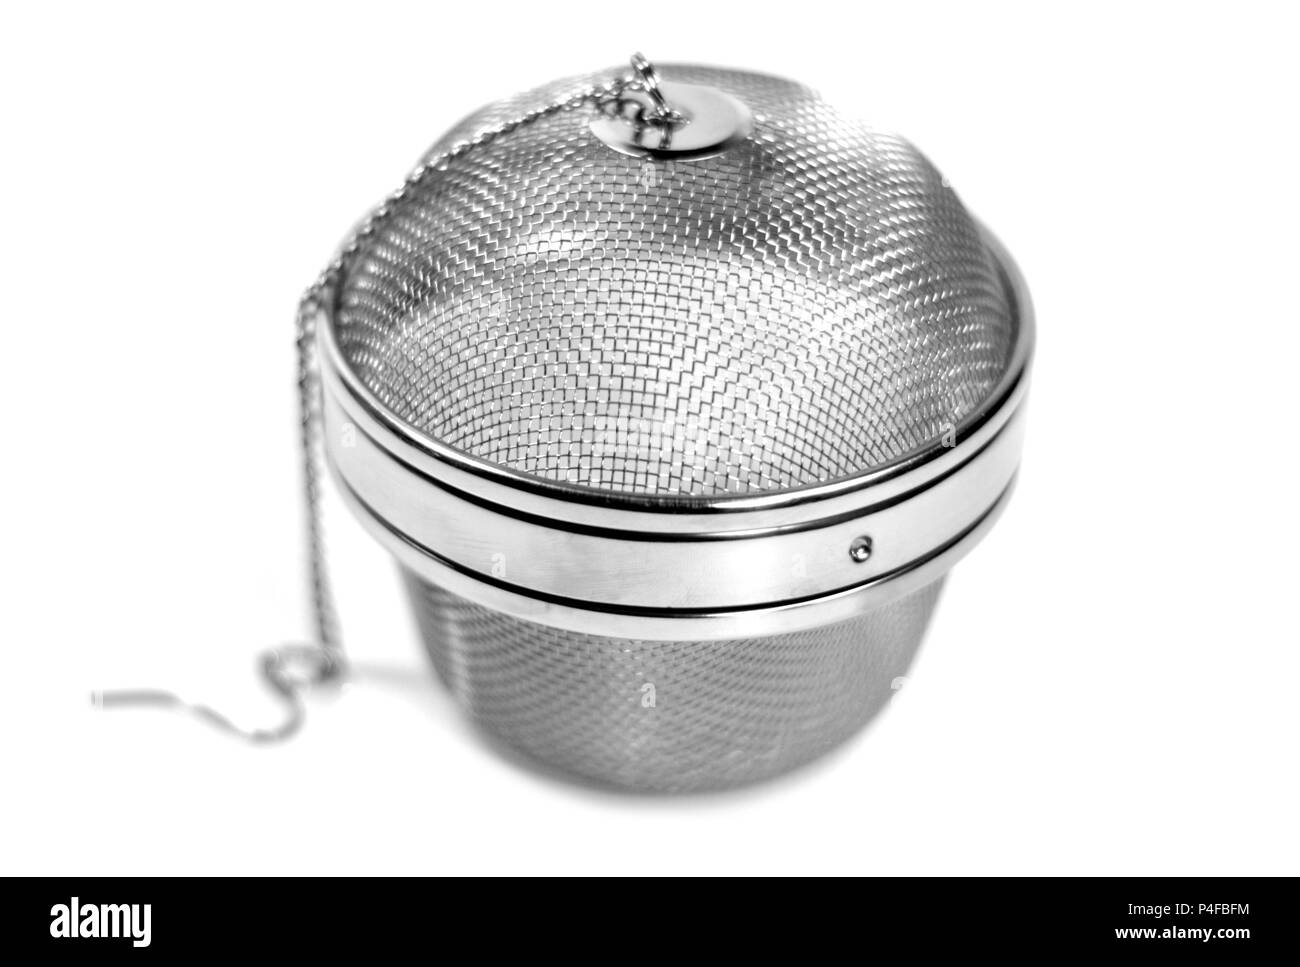 Wire Strainer Stock Photos & Wire Strainer Stock Images - Alamy